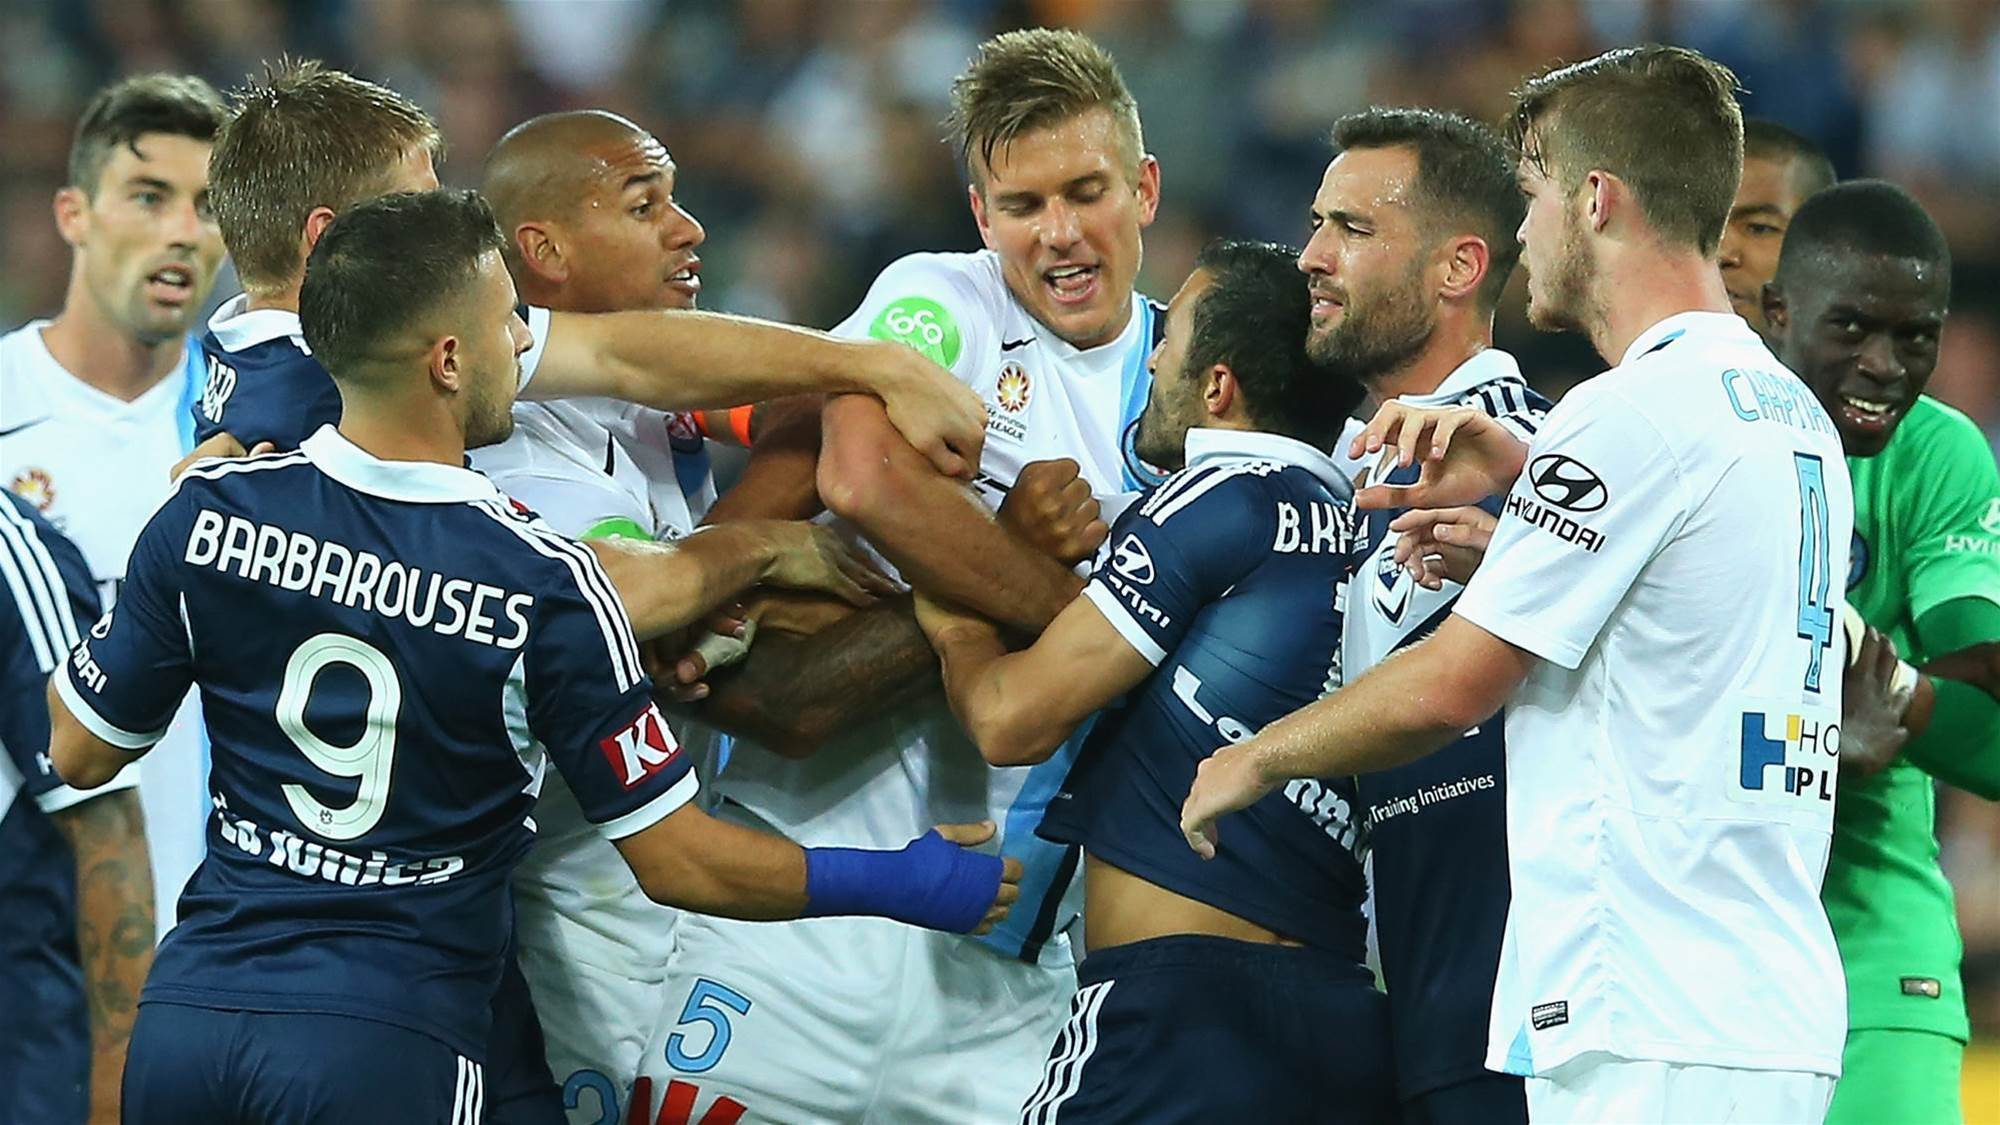 Melbourne Derby Q&A with Paartalu: 'We were made to feel inferior'